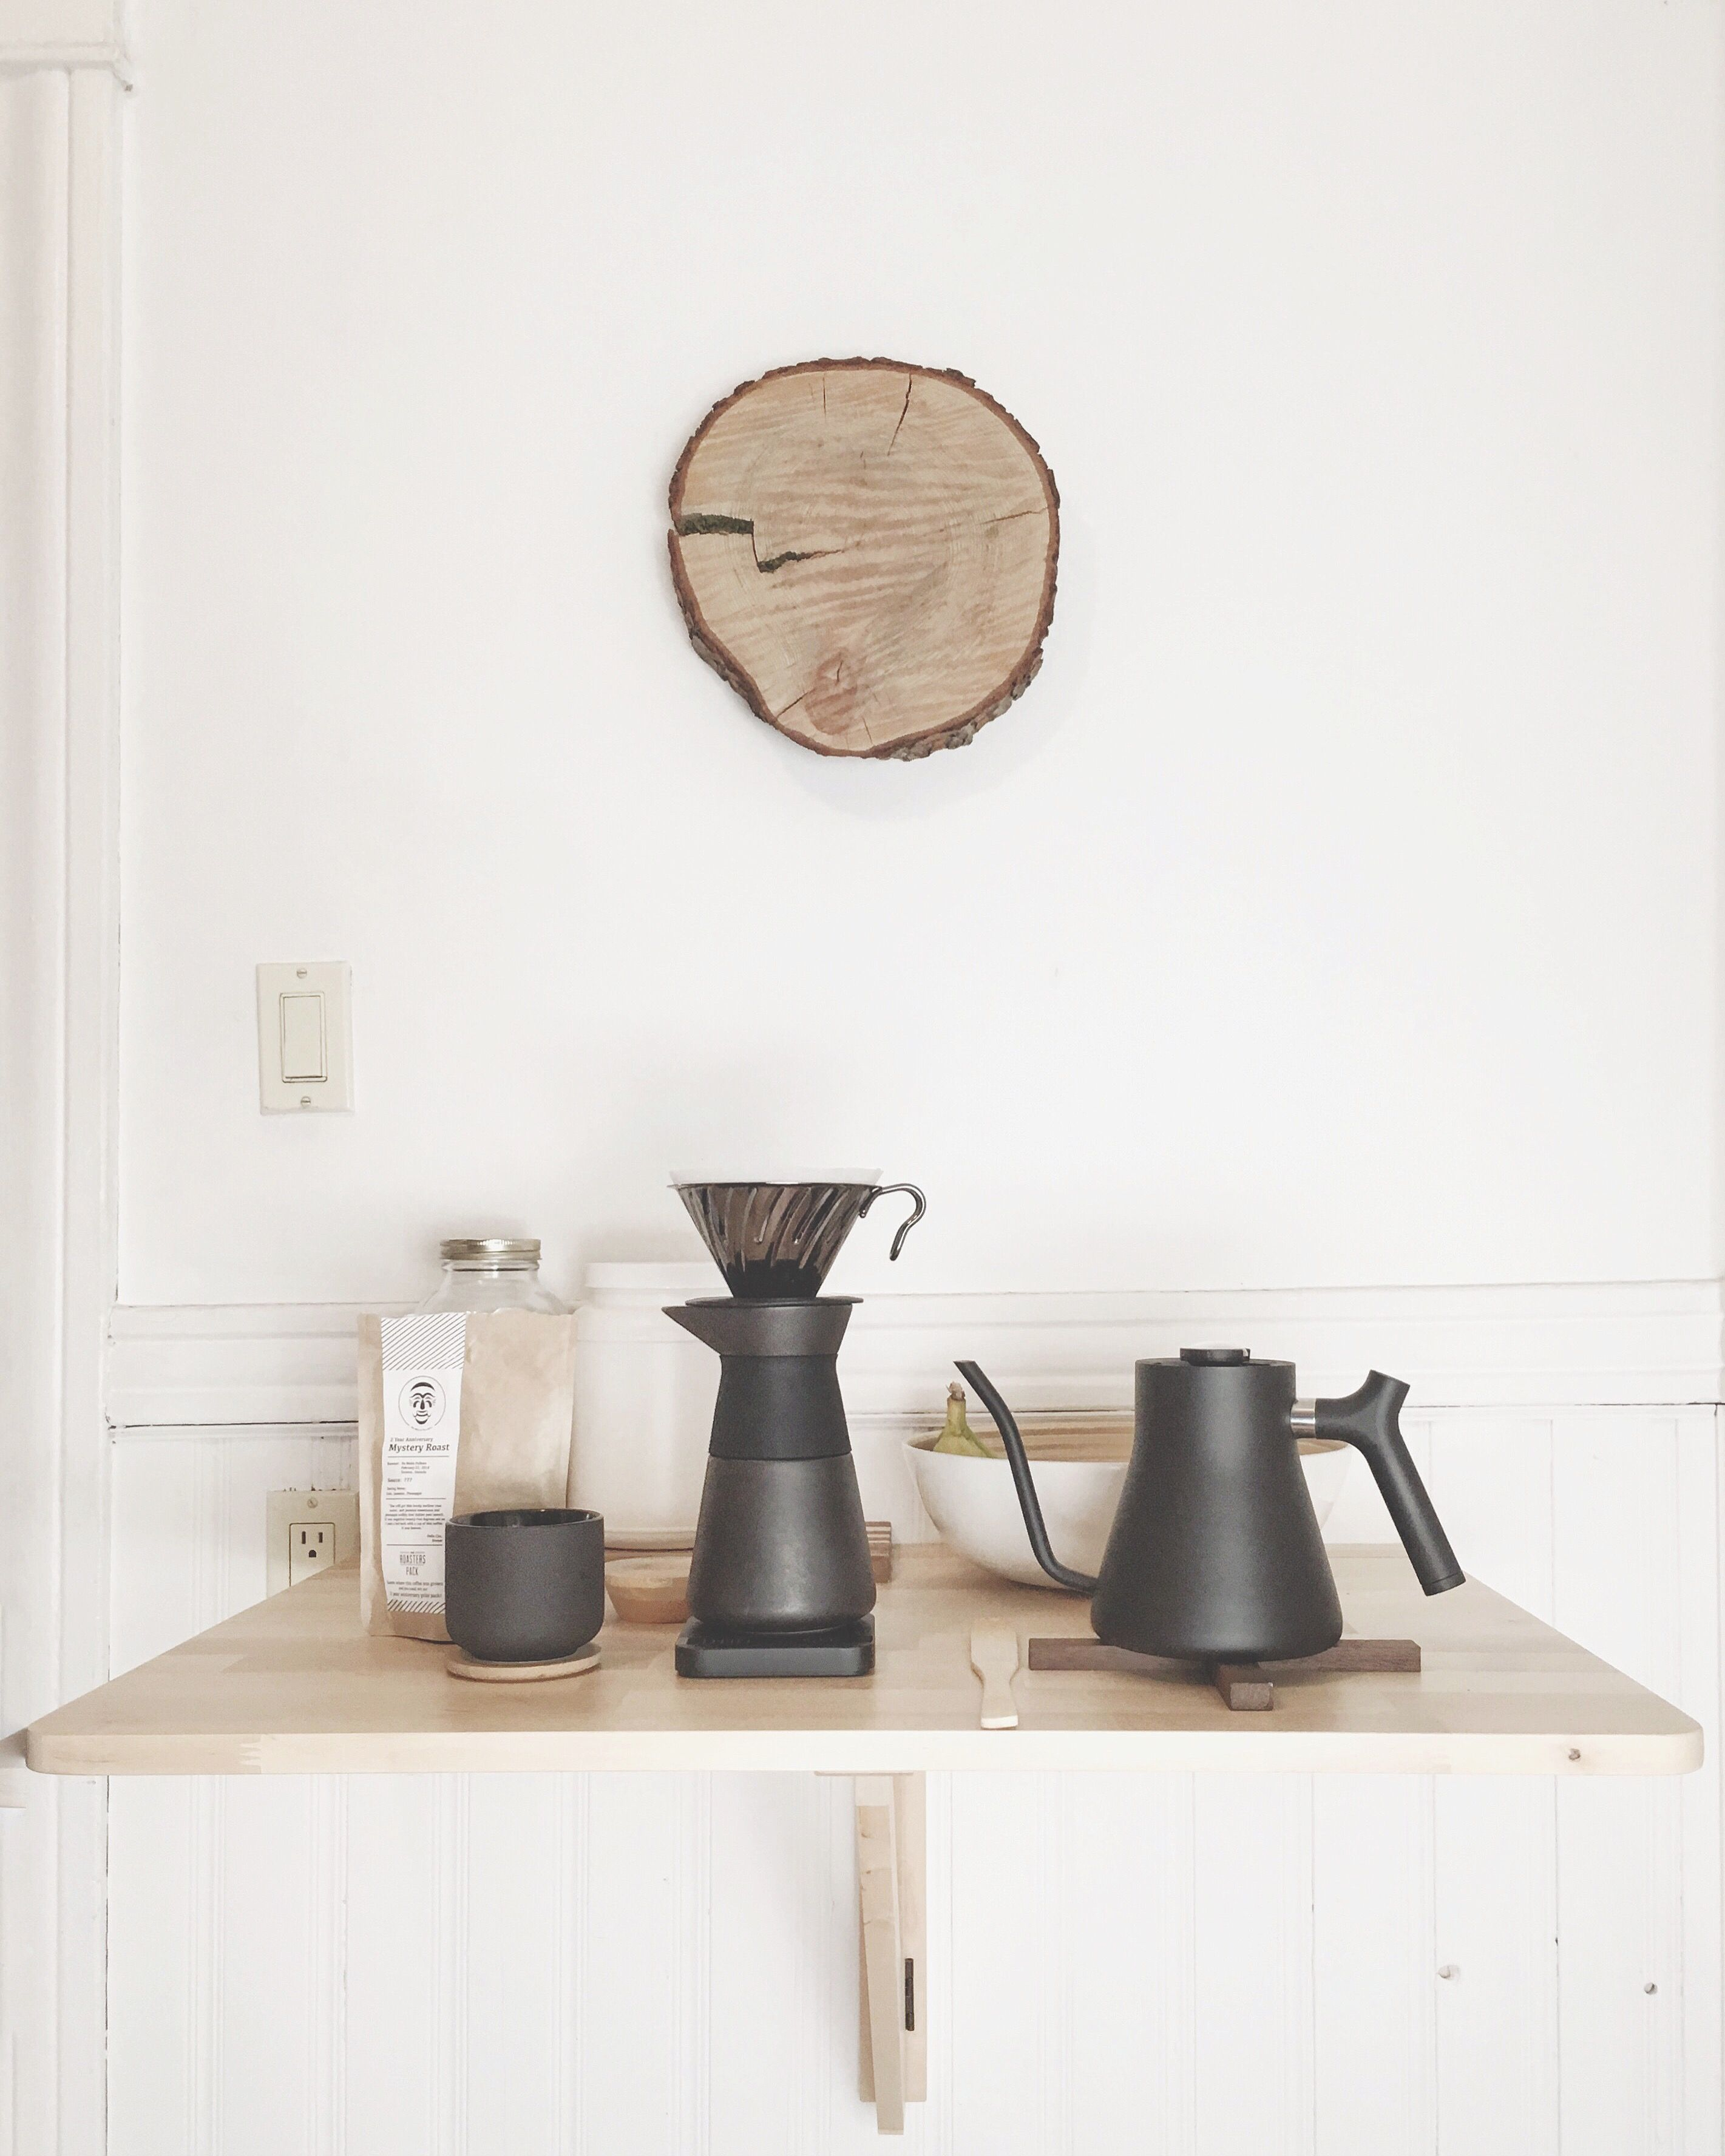 My pour over coffee station in a minimalist kitchen